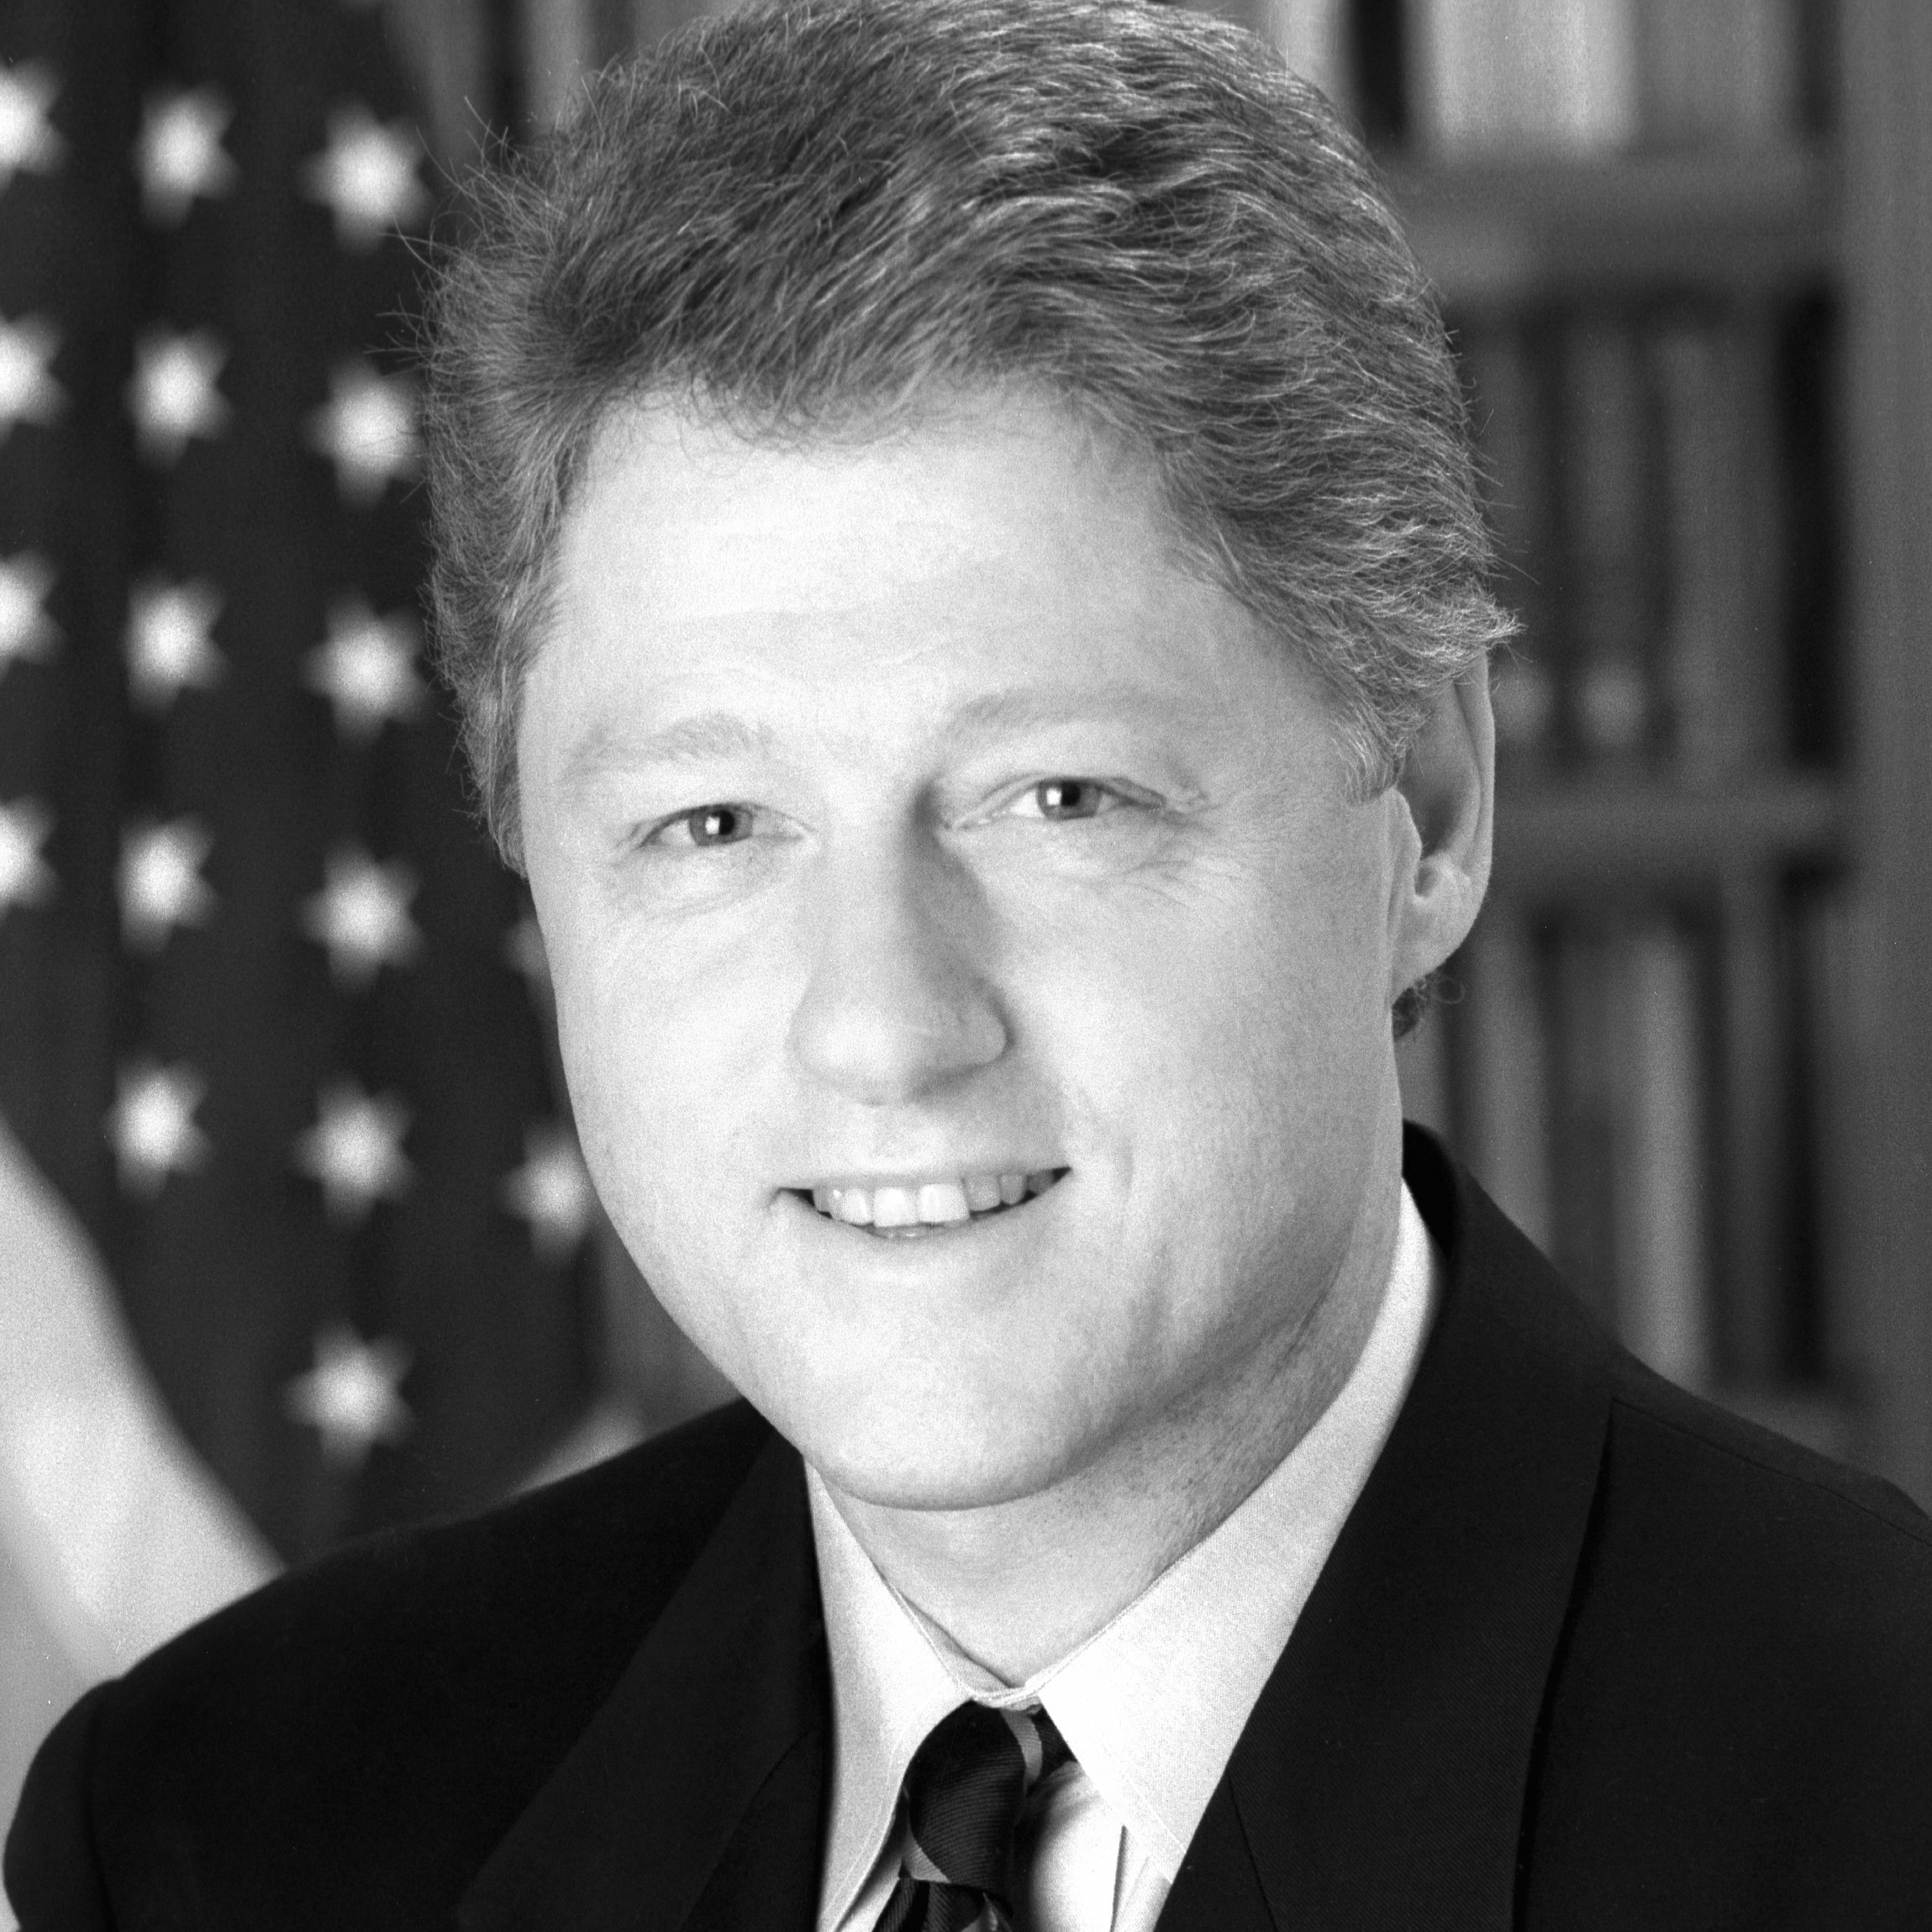 President Bill Clinton - 42nd President of the United States